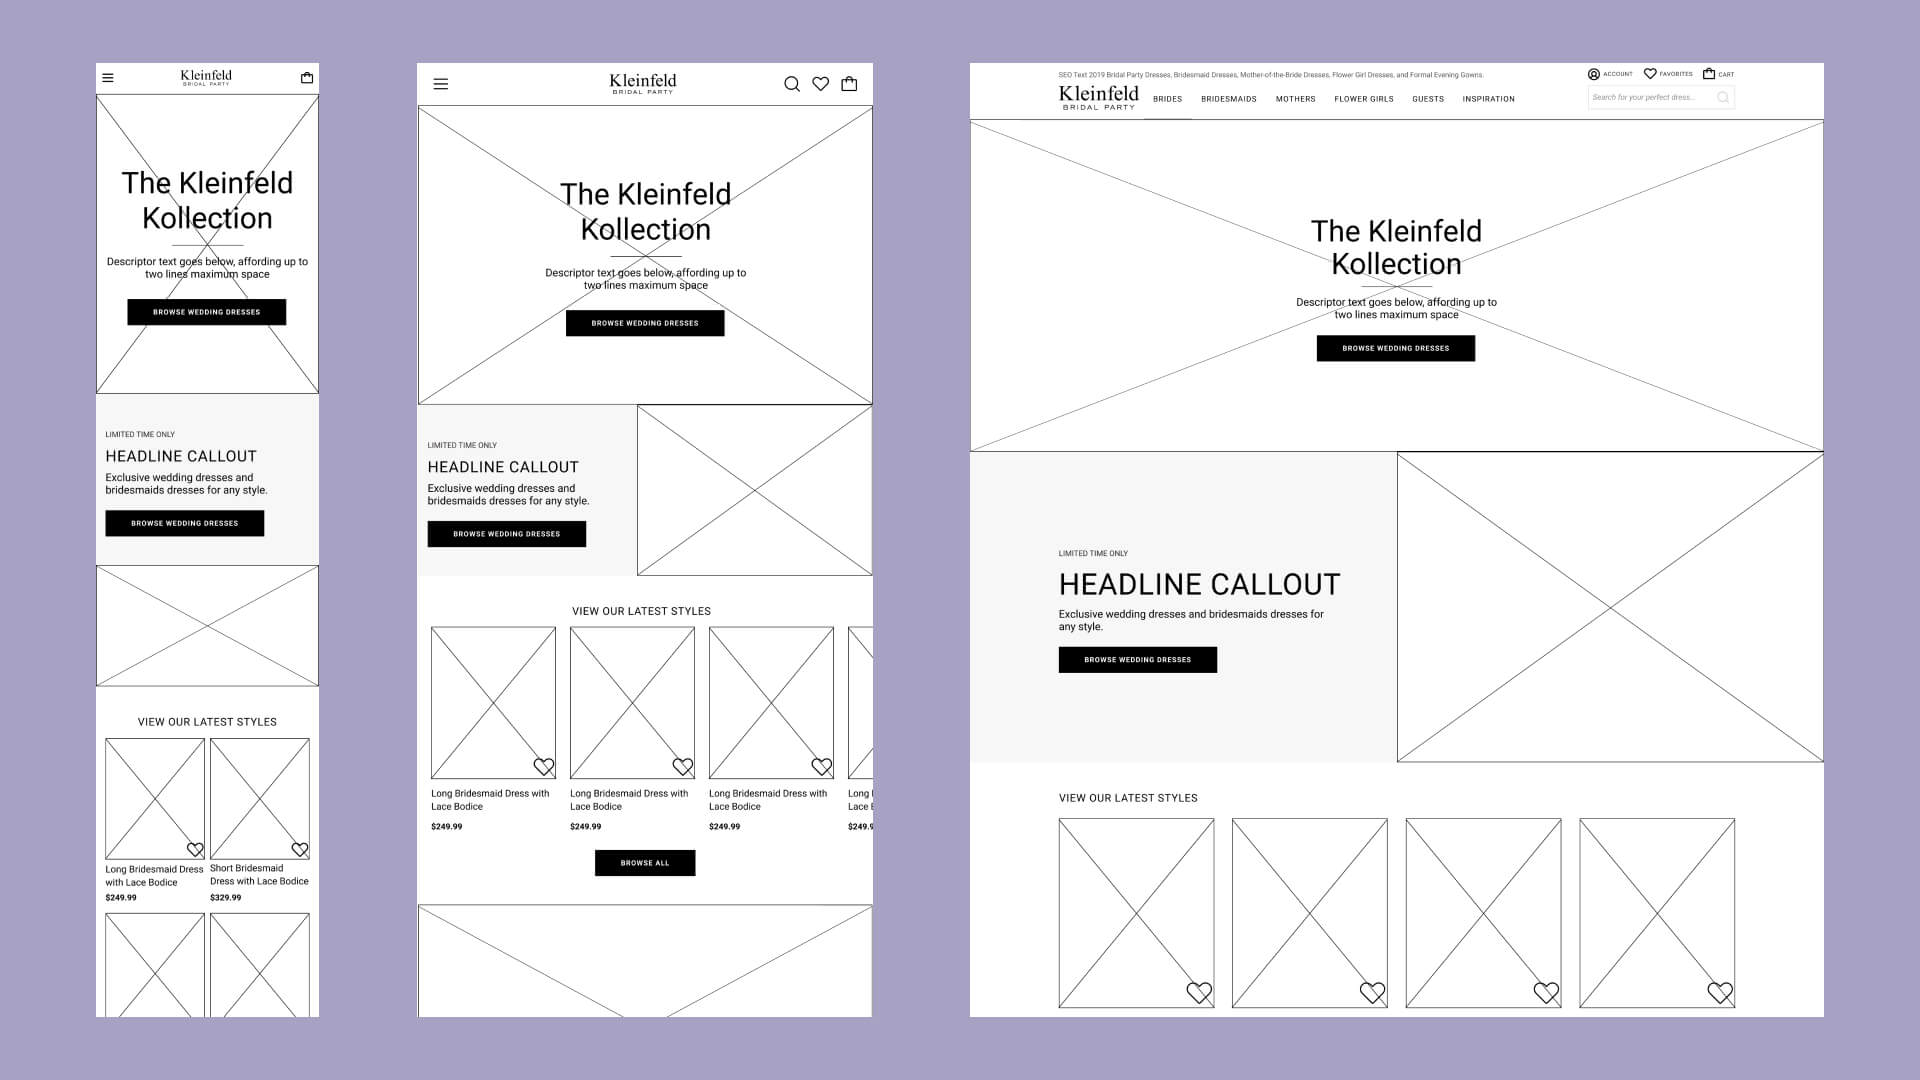 Wireframes of the KBP homepage in mobile, tablet, and desktop